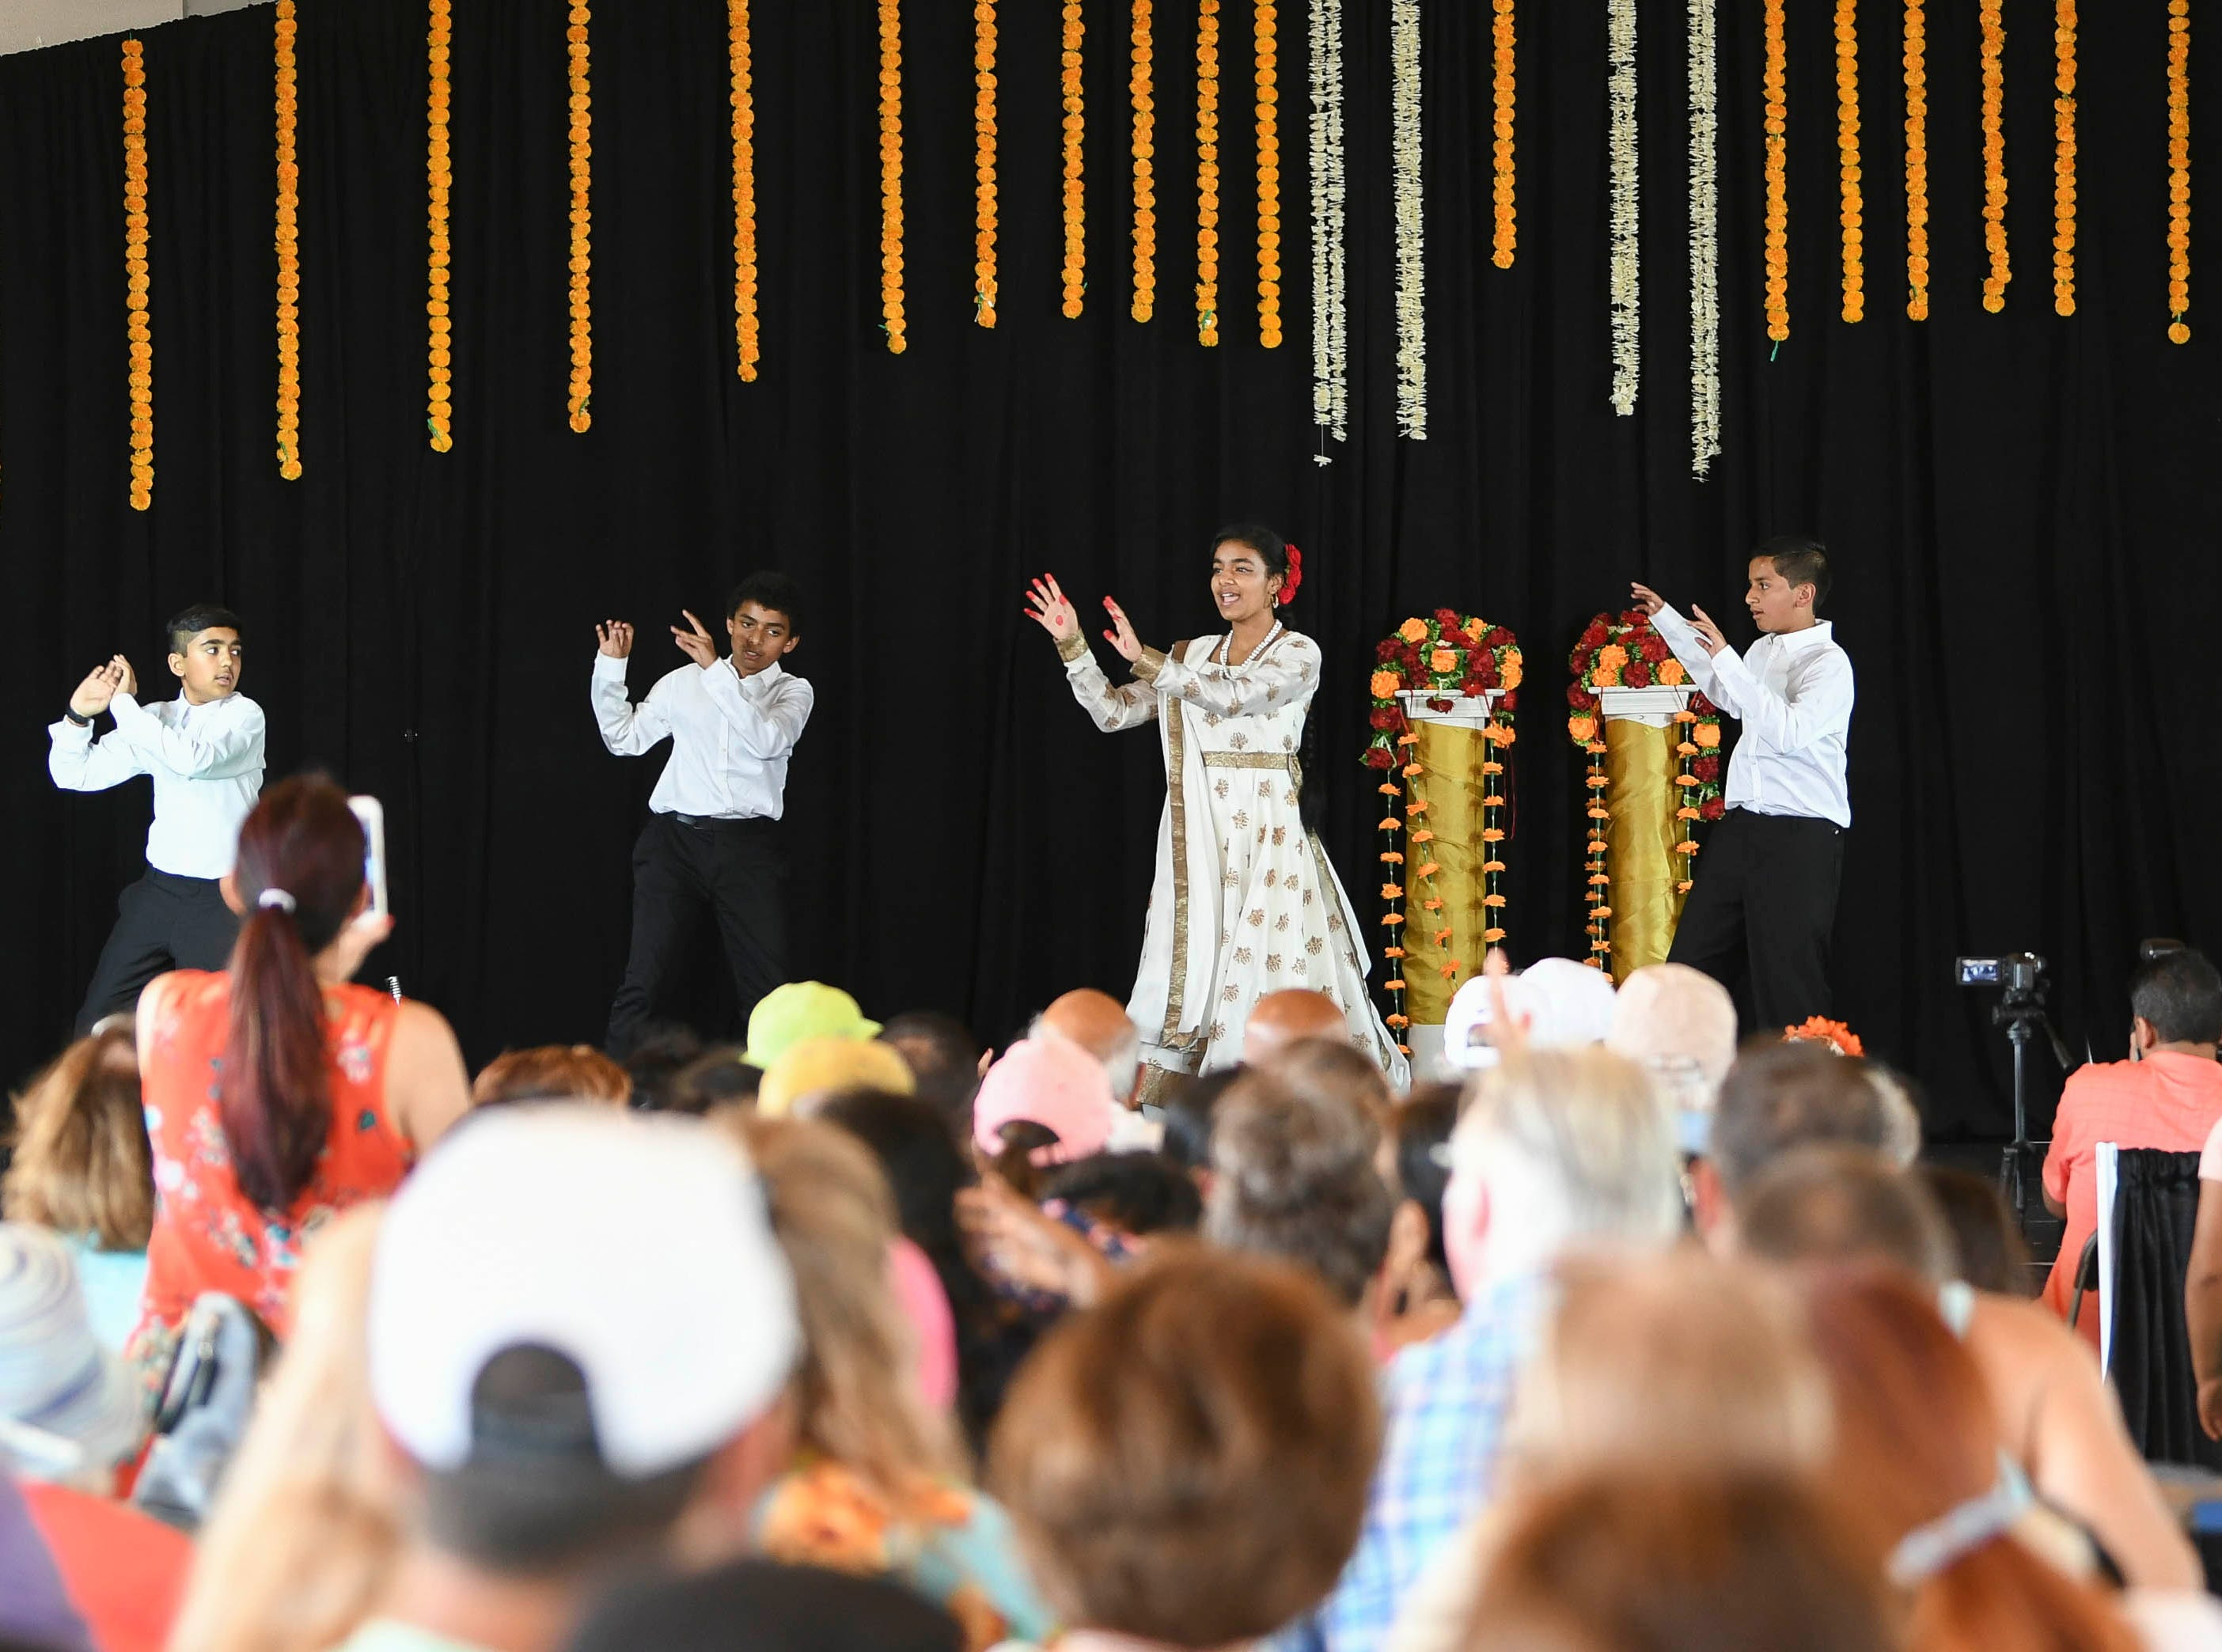 Dancers perform on stage for the crowd during Indiafest Saturday at Wickham Park's main pavilion.